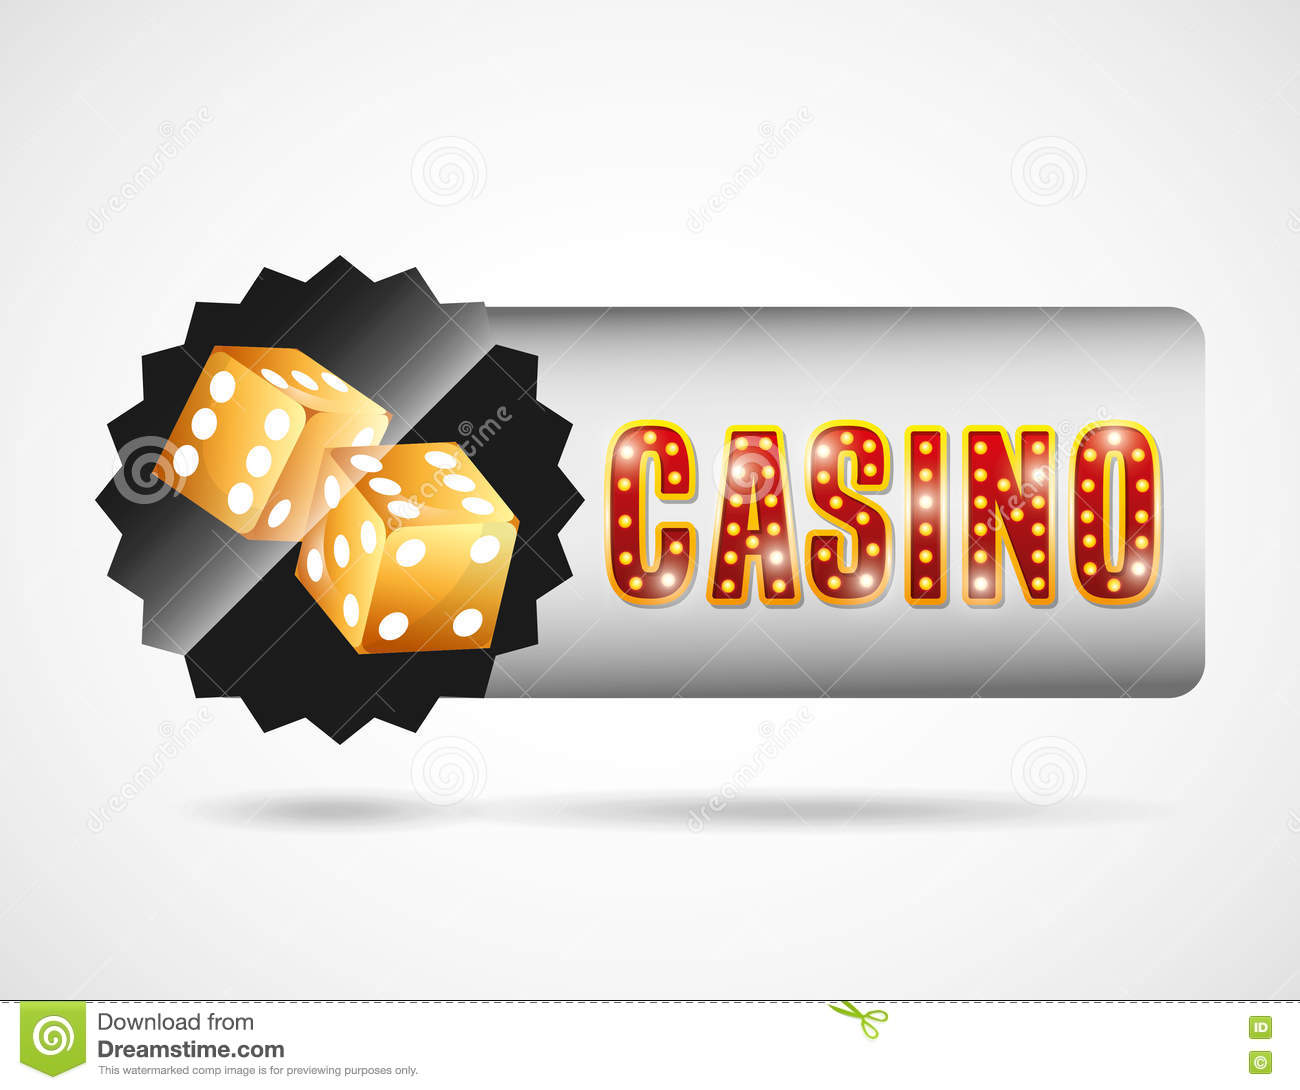 Casinoclub.De